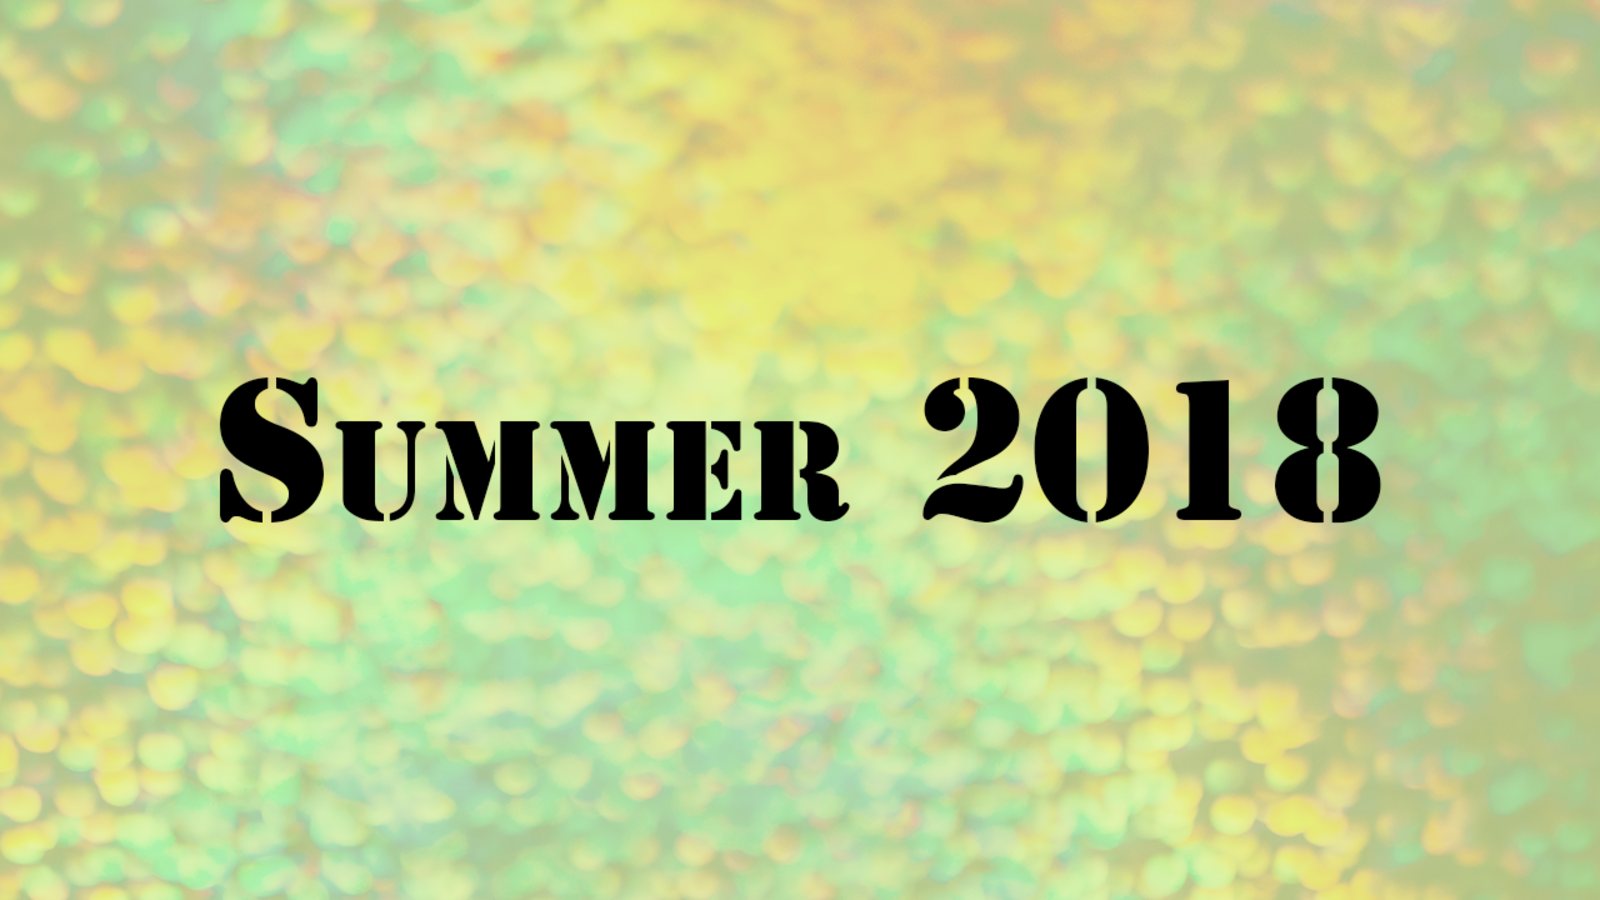 Recent Things and the Start of the Summer 2018